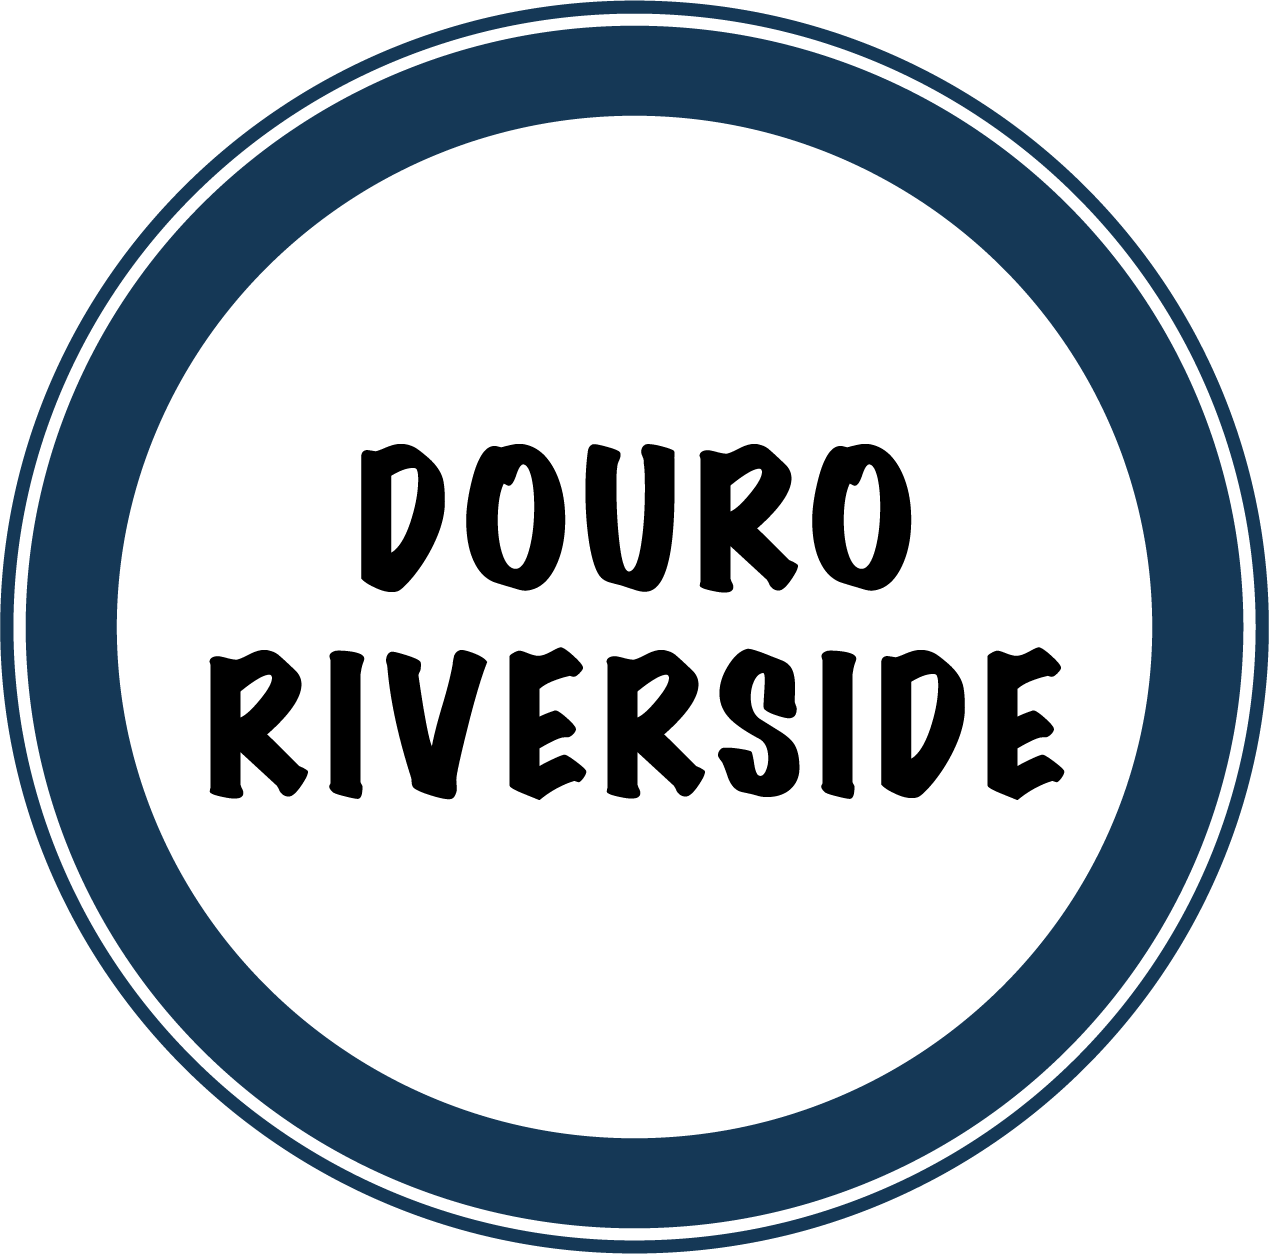 Douro Riverside Apartments - Official Website